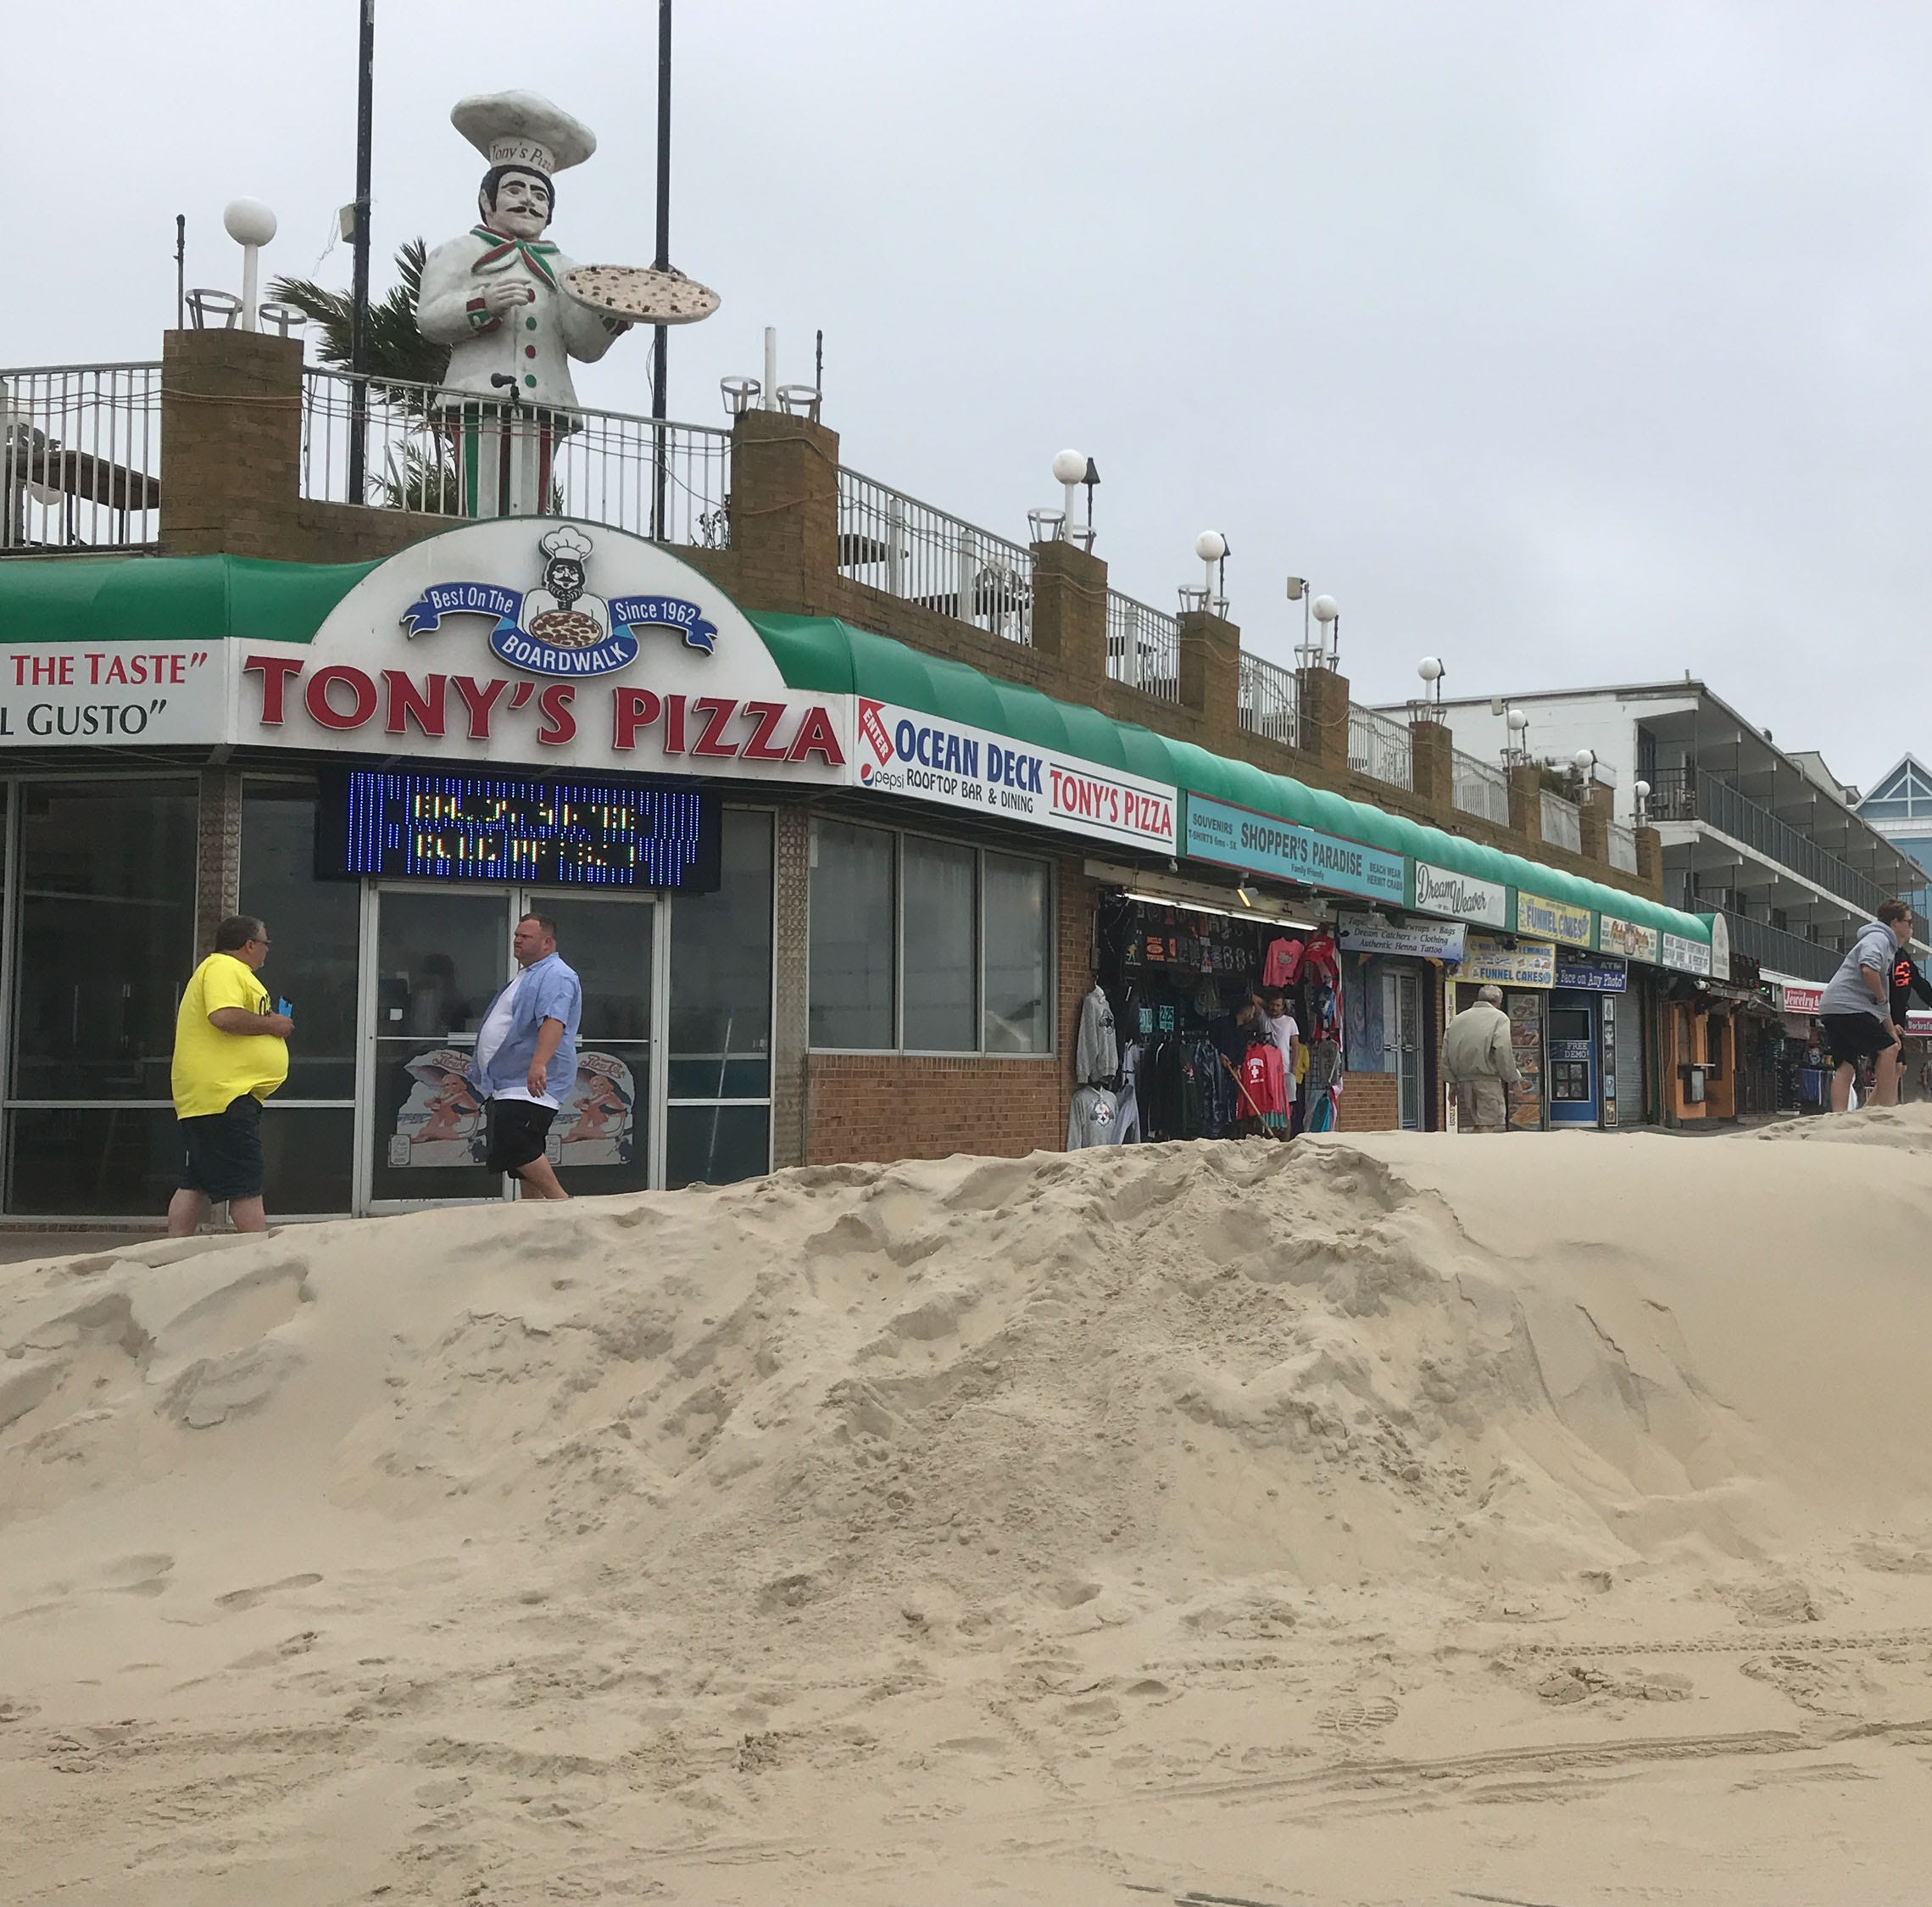 PHOTOS: Rough seas, flooding, sand on boardwalk in Ocean City, Rehoboth